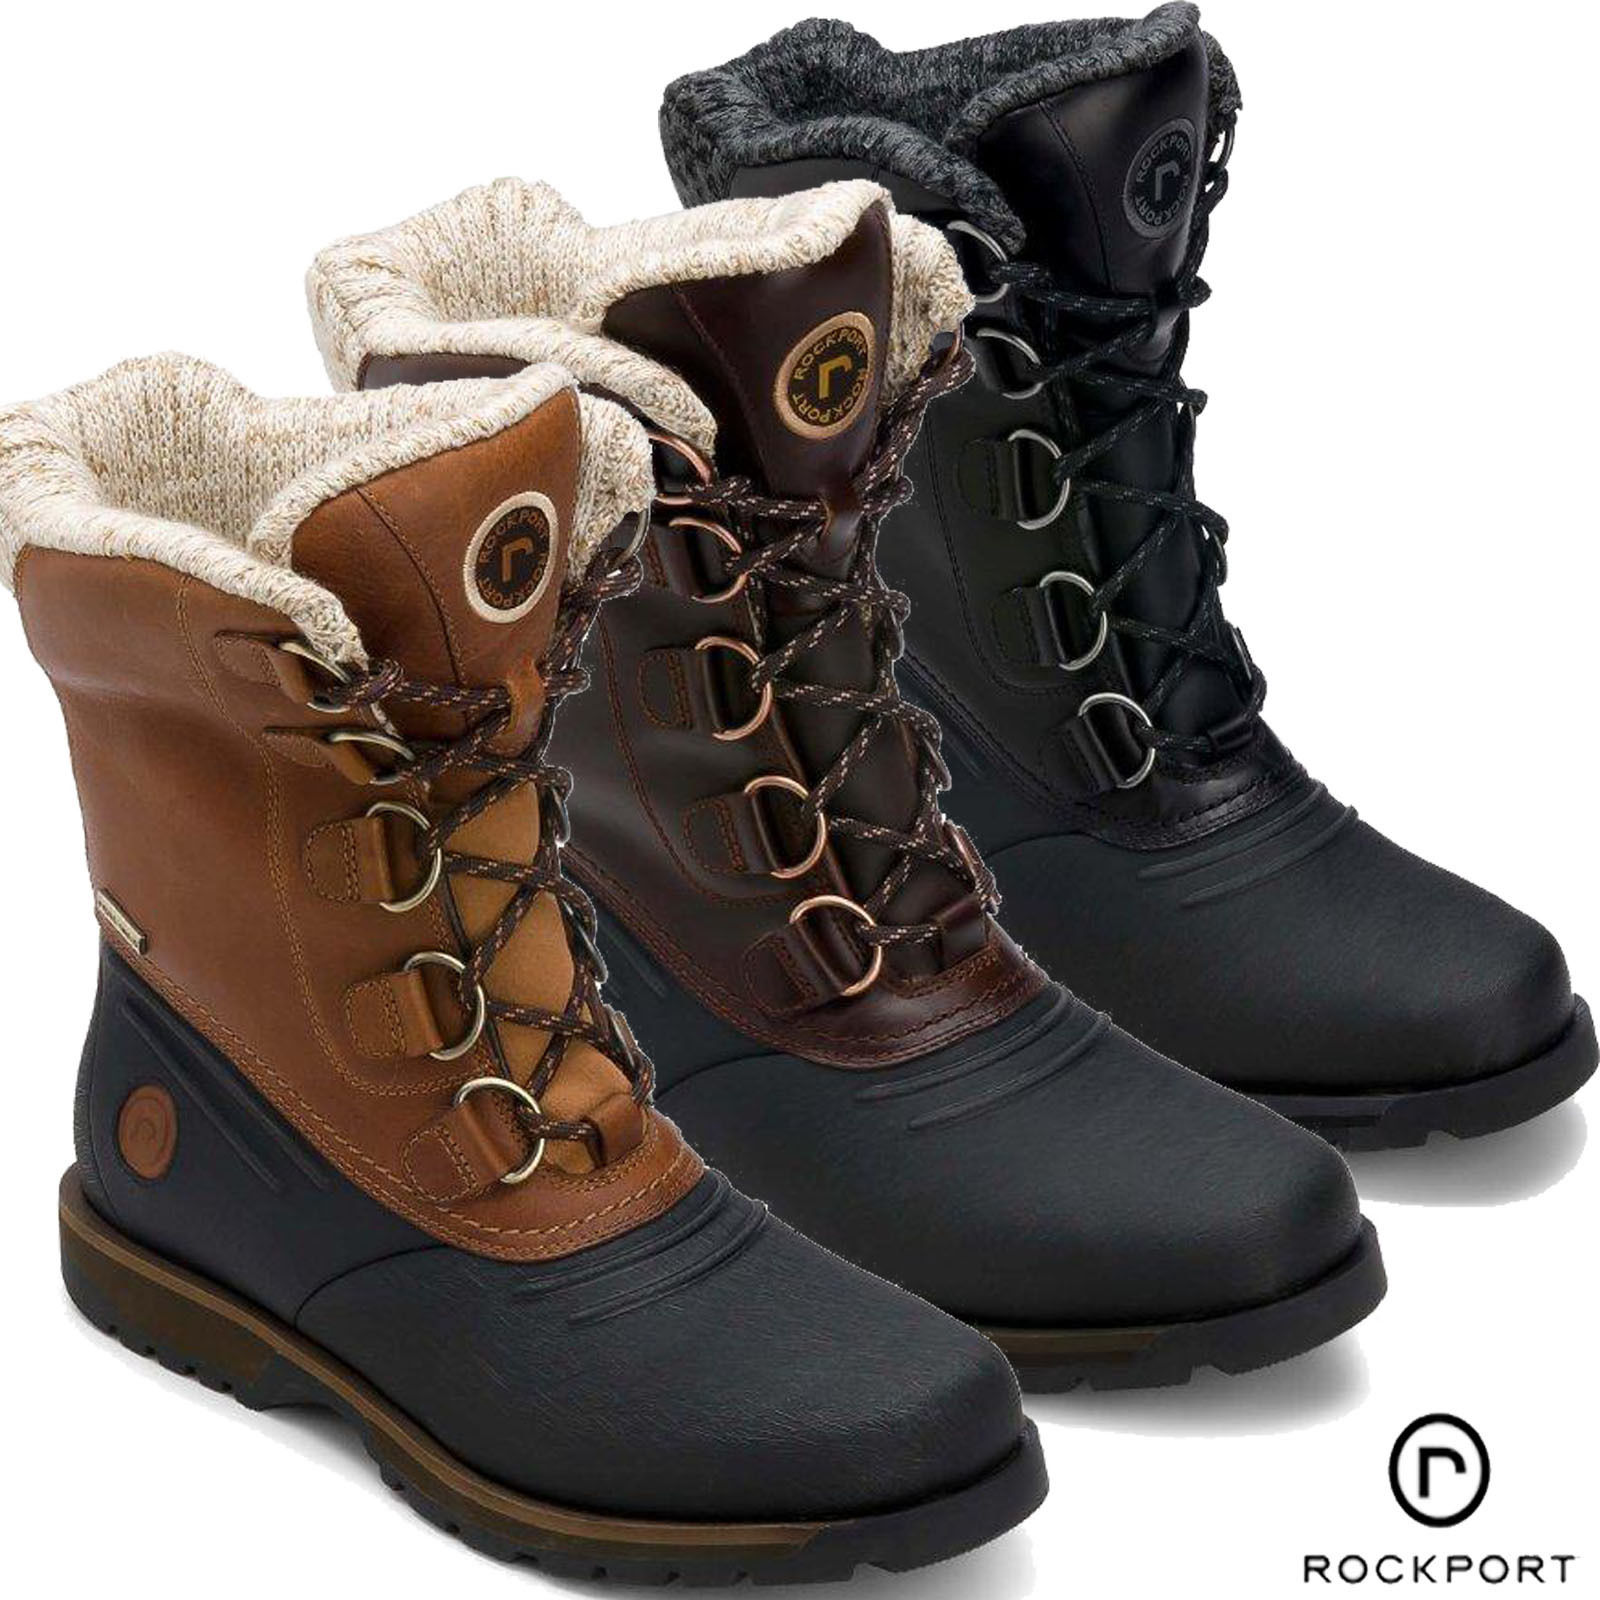 Warm Winter Boots For Men 3iXUmL1w